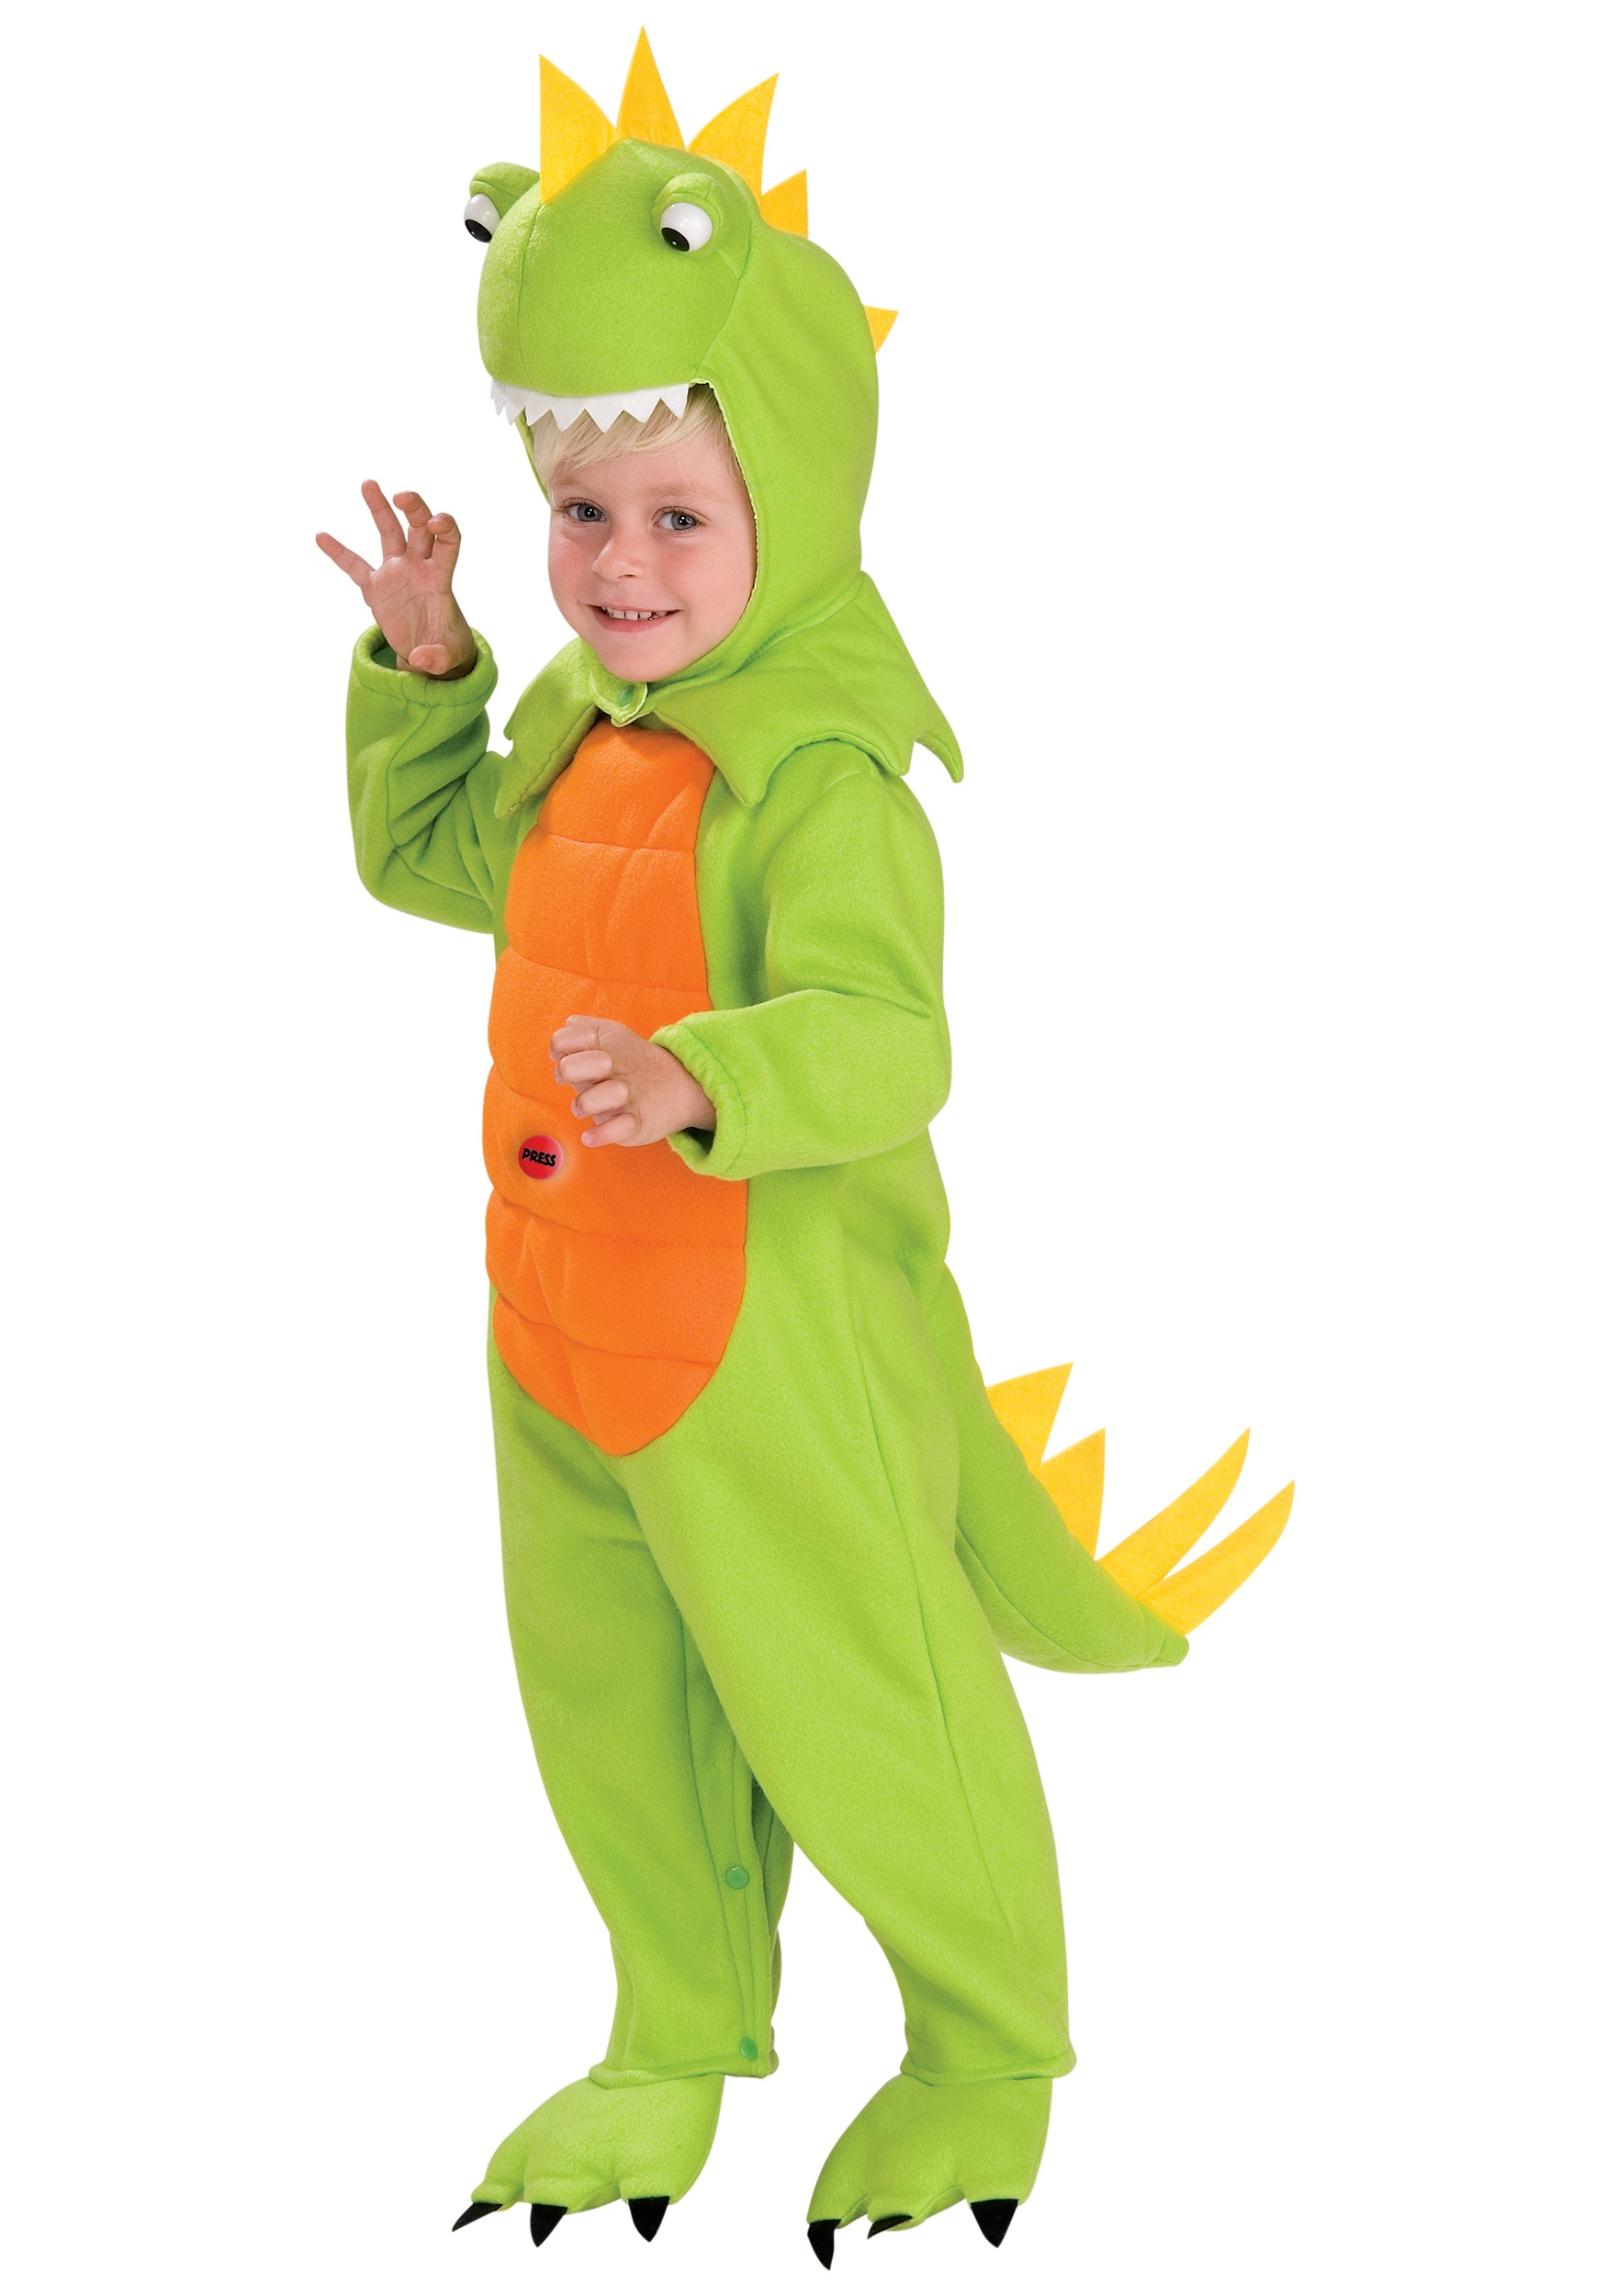 Find great deals on eBay for Kids Dinosaur Costume in Boys Theater and Reenactment Costumes. Shop with confidence.